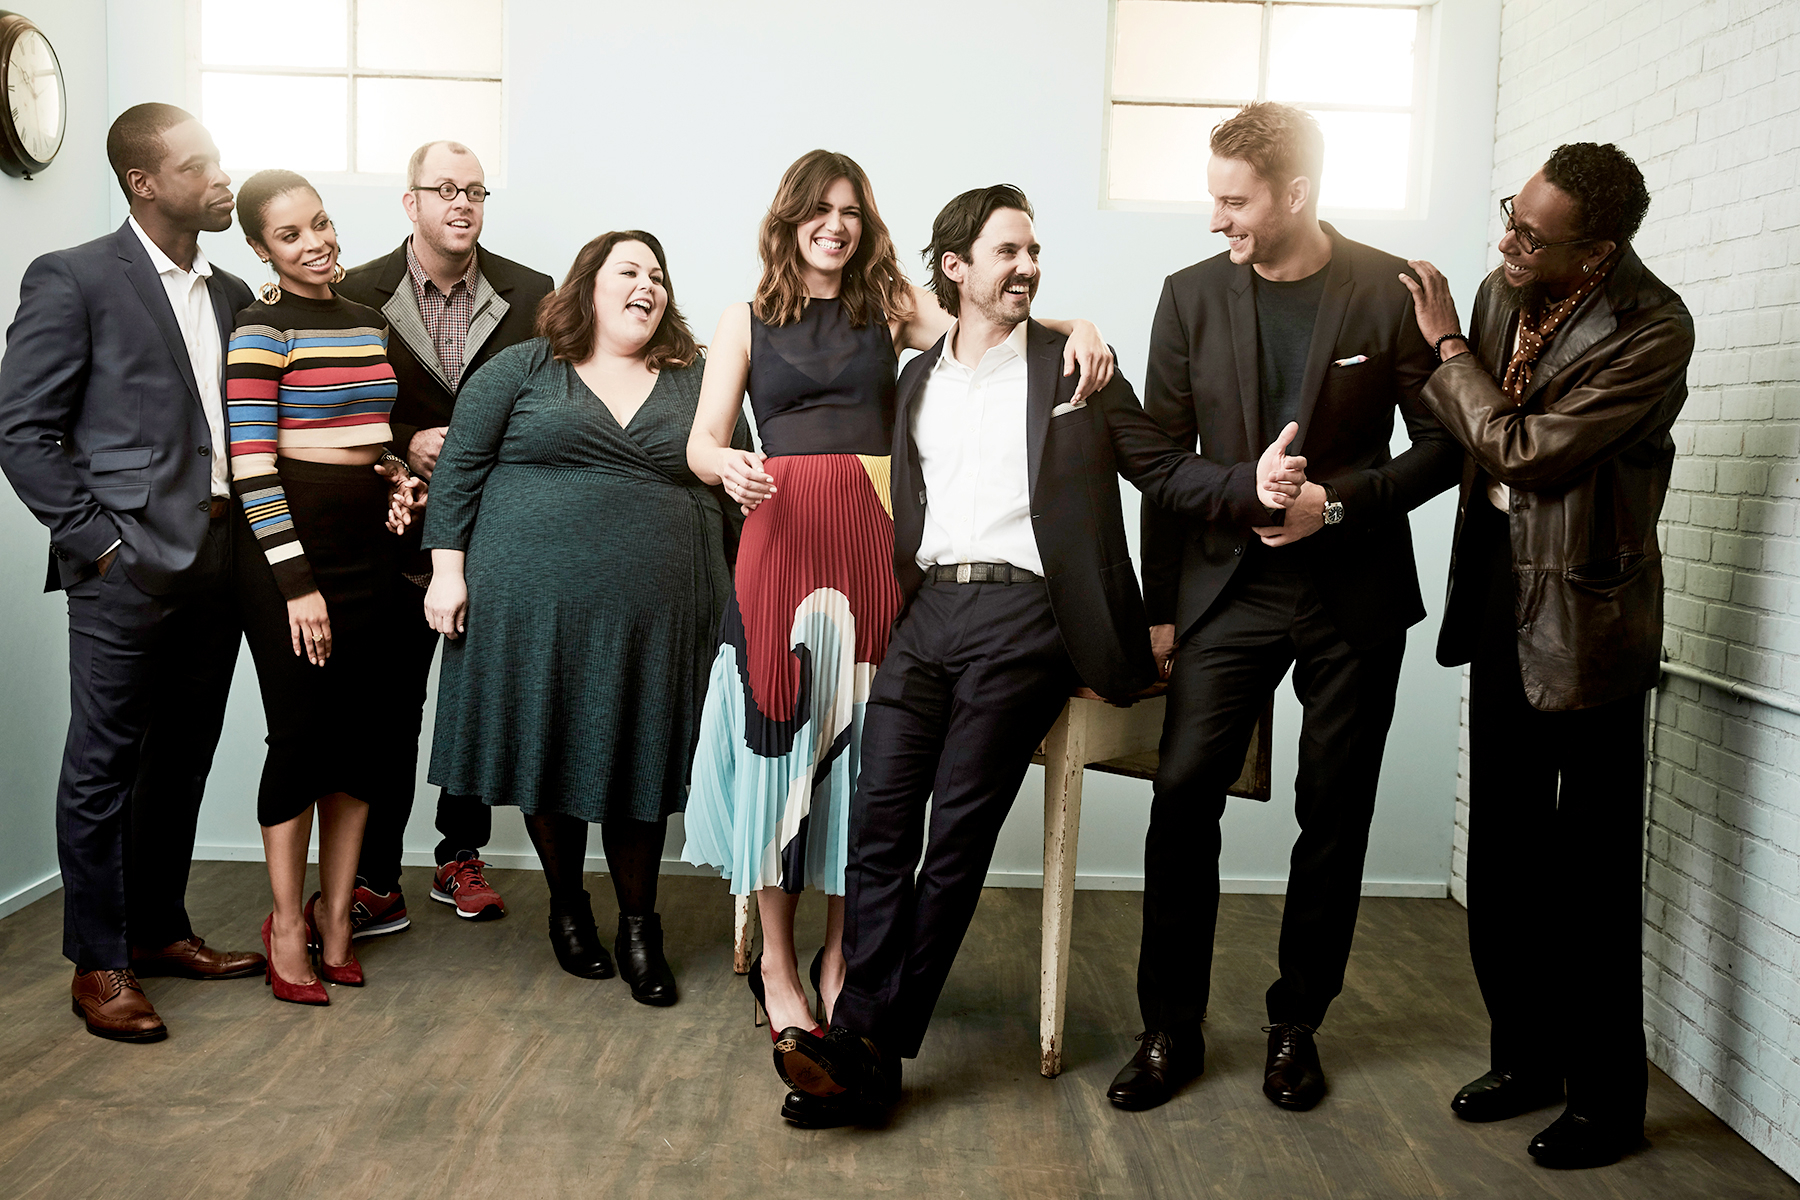 Sterling K. Brown, Susan Kelechi Watson, Chris Sullivan, Chrissy Metz, Mandy Moore, Milo Ventimiglia, Justin Hartley and Ron Cephas Jones of 'This Is Us' pose for a portrait in the NBCUniversal Press Tour portrait studio at The Langham Huntington, Pasadena on January 18, 2017 in Pasadena, California.